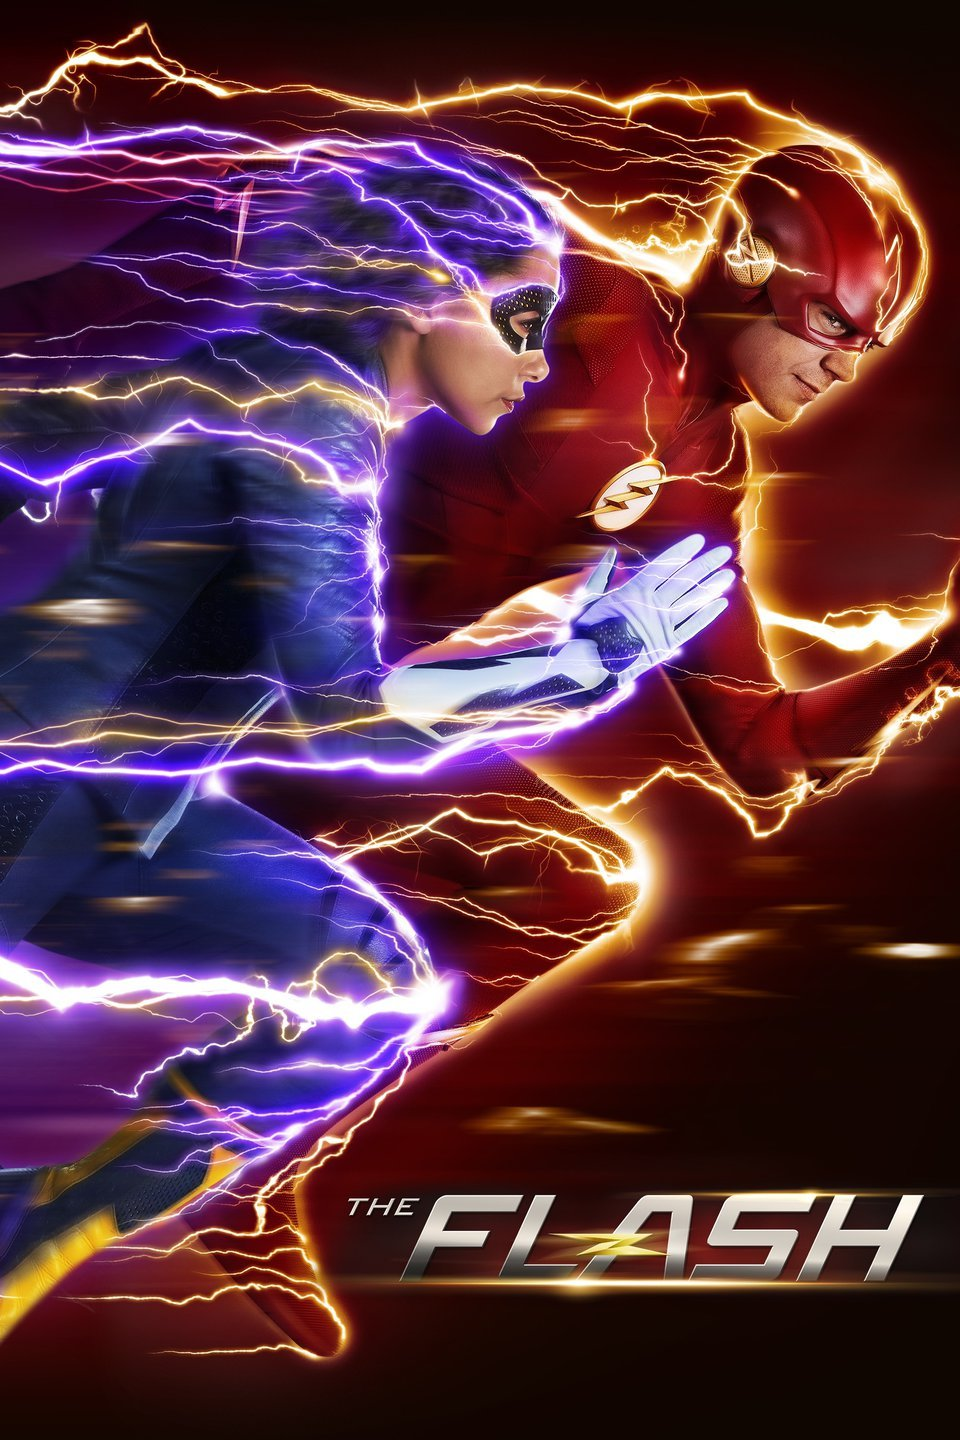 The Flash S05 Complete 720p HDTV (Season 5) Web-DL [S5 Episode 9 Added]